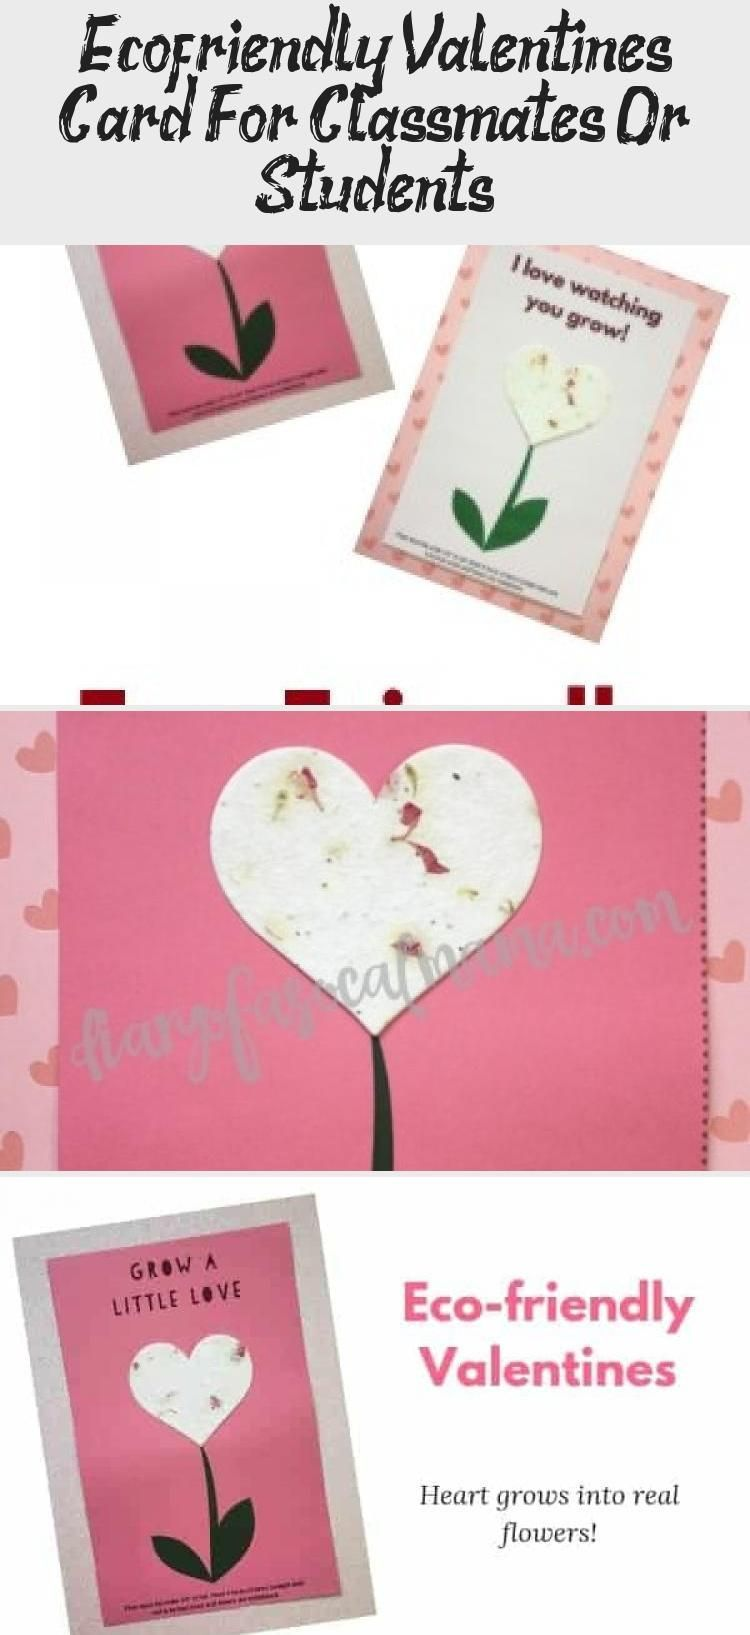 Eco Friendly Valentines Card For Classmates Or Students